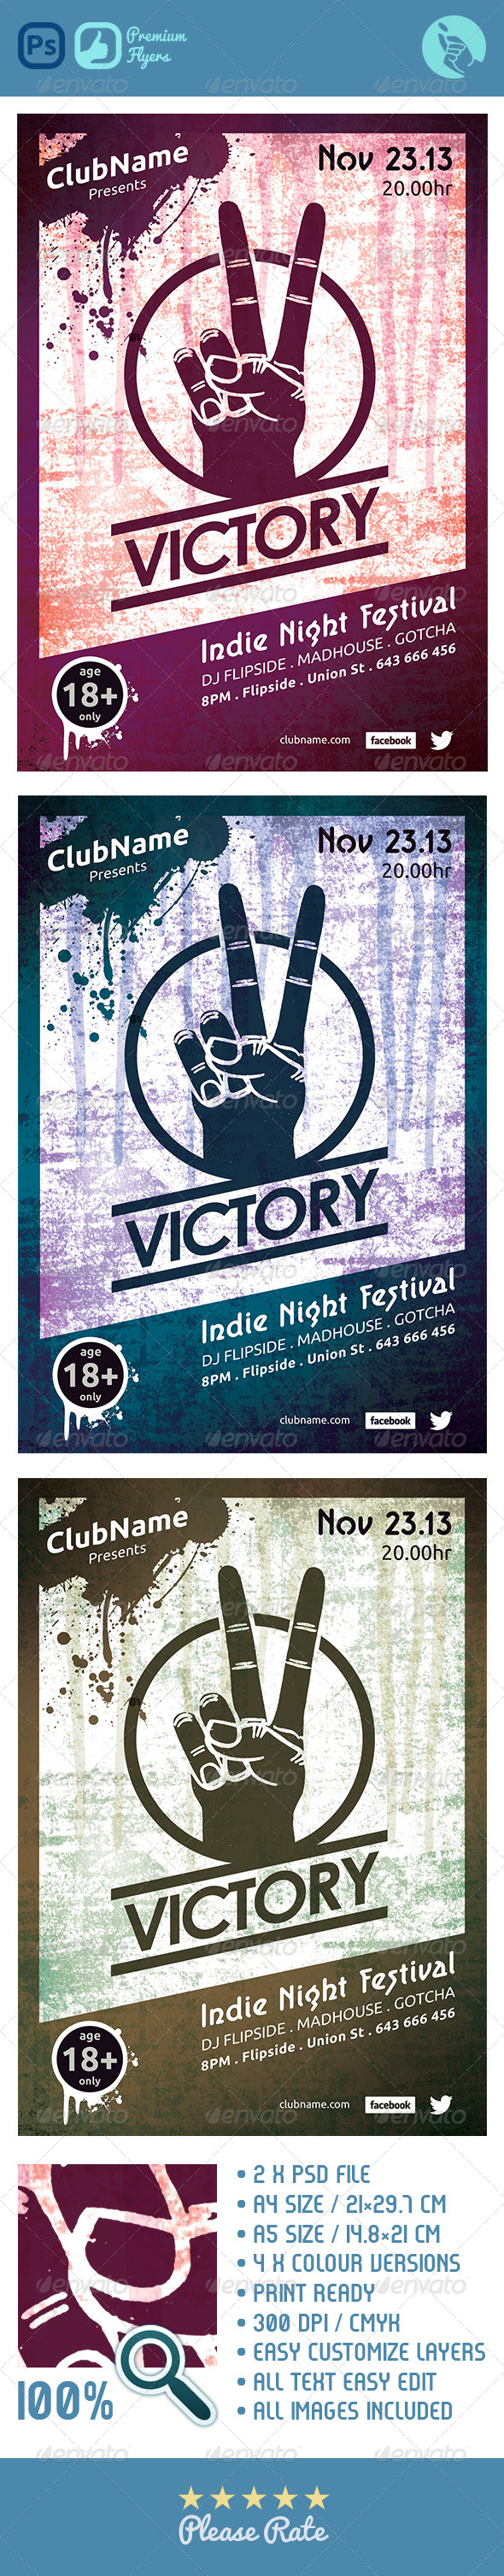 GraphicRiver Victory Indie Night Flyer 4497774